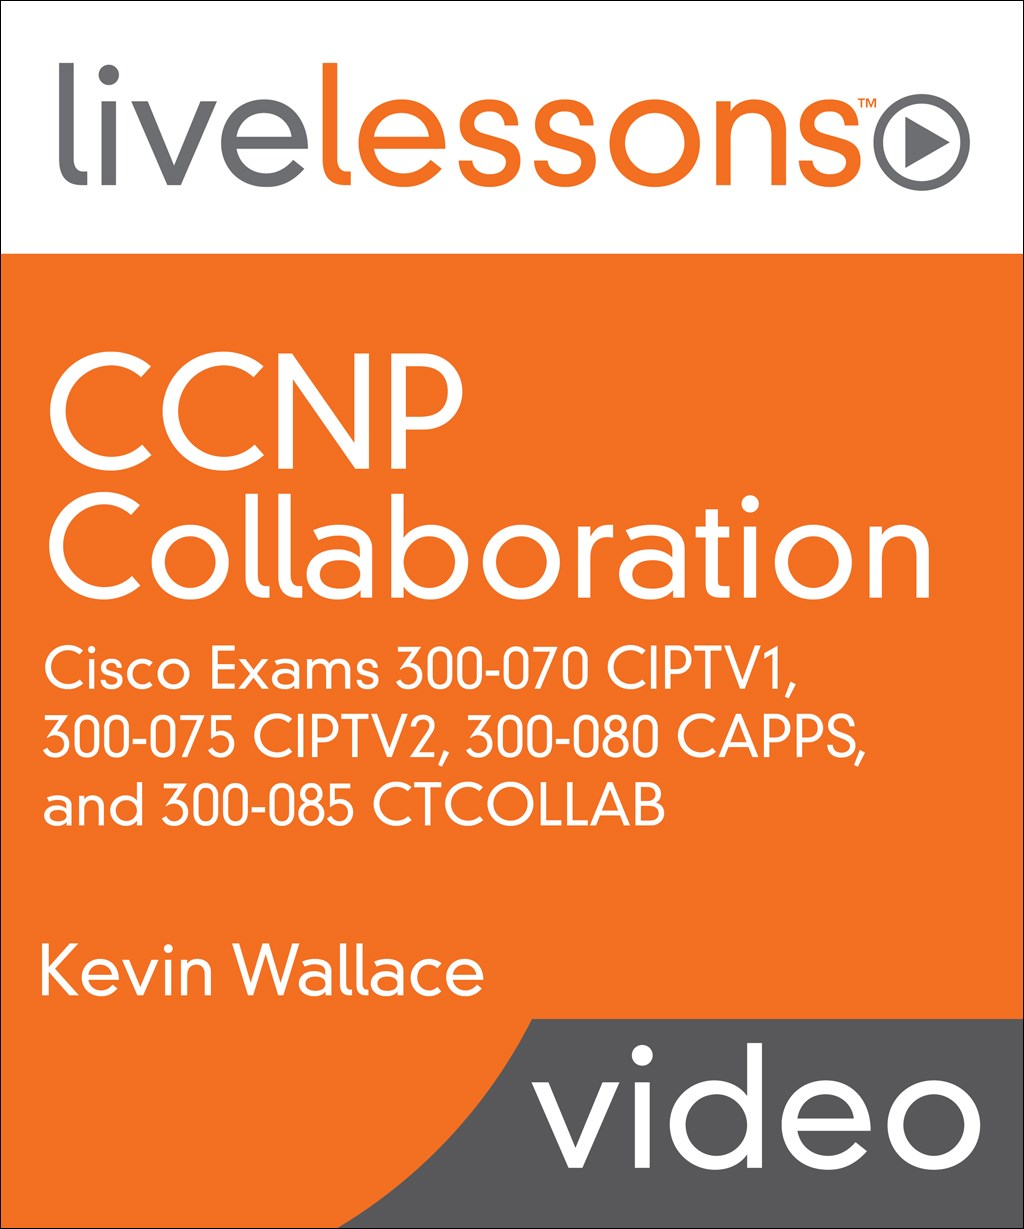 CCNP Collaboration LiveLessons